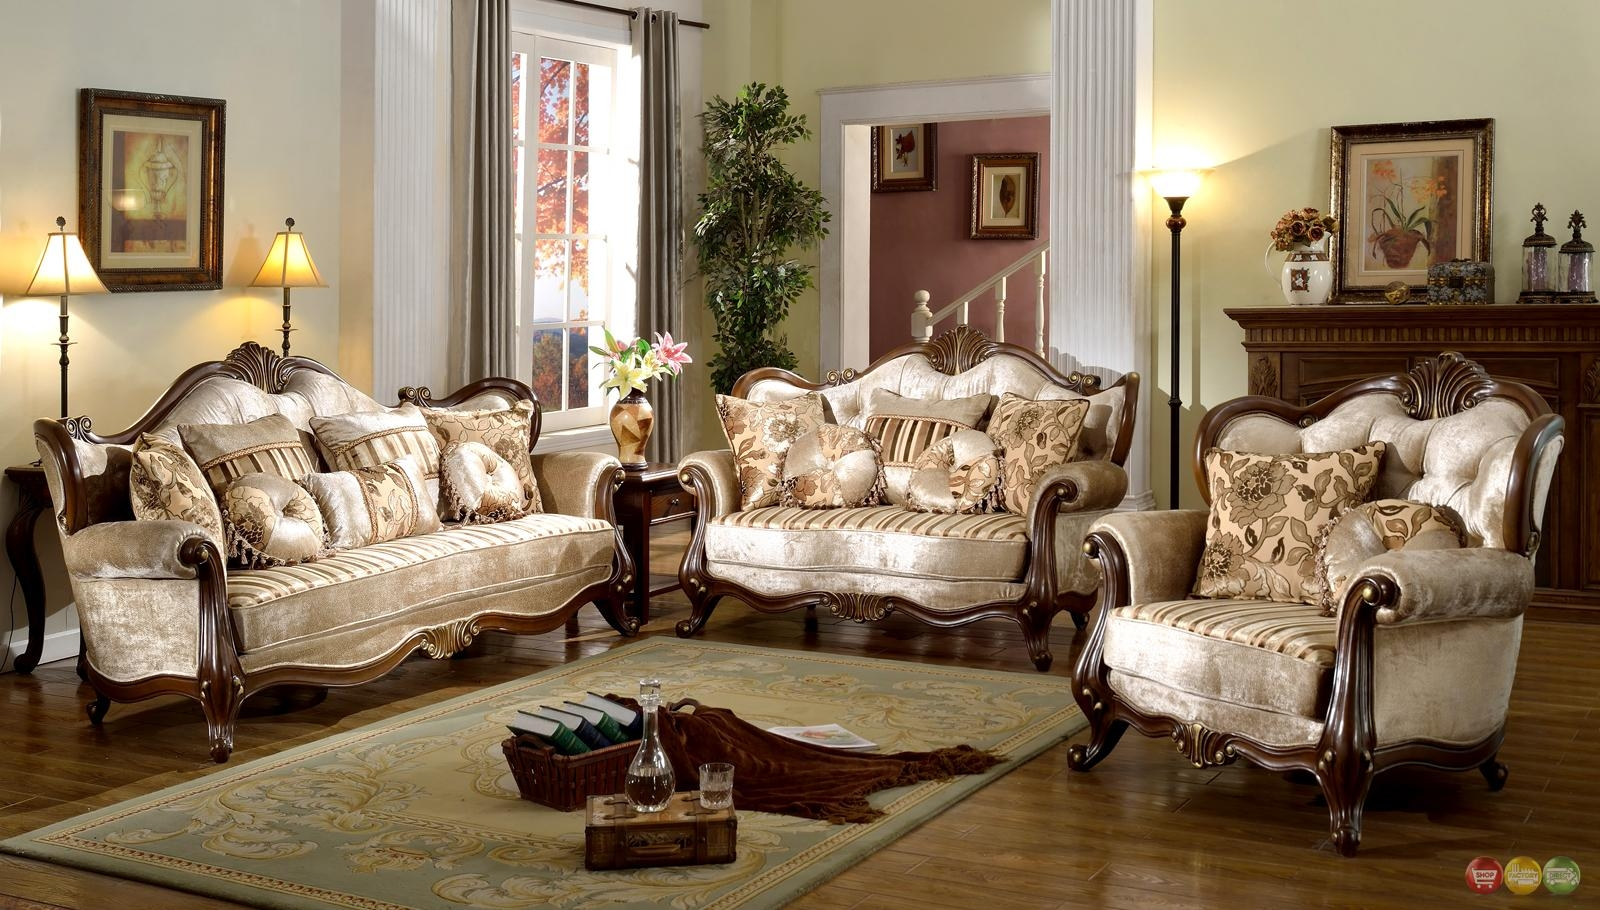 French Provincial Formal Antique Style Living Room Furniture Set Intended For Living Room Sofa Chairs (View 15 of 20)